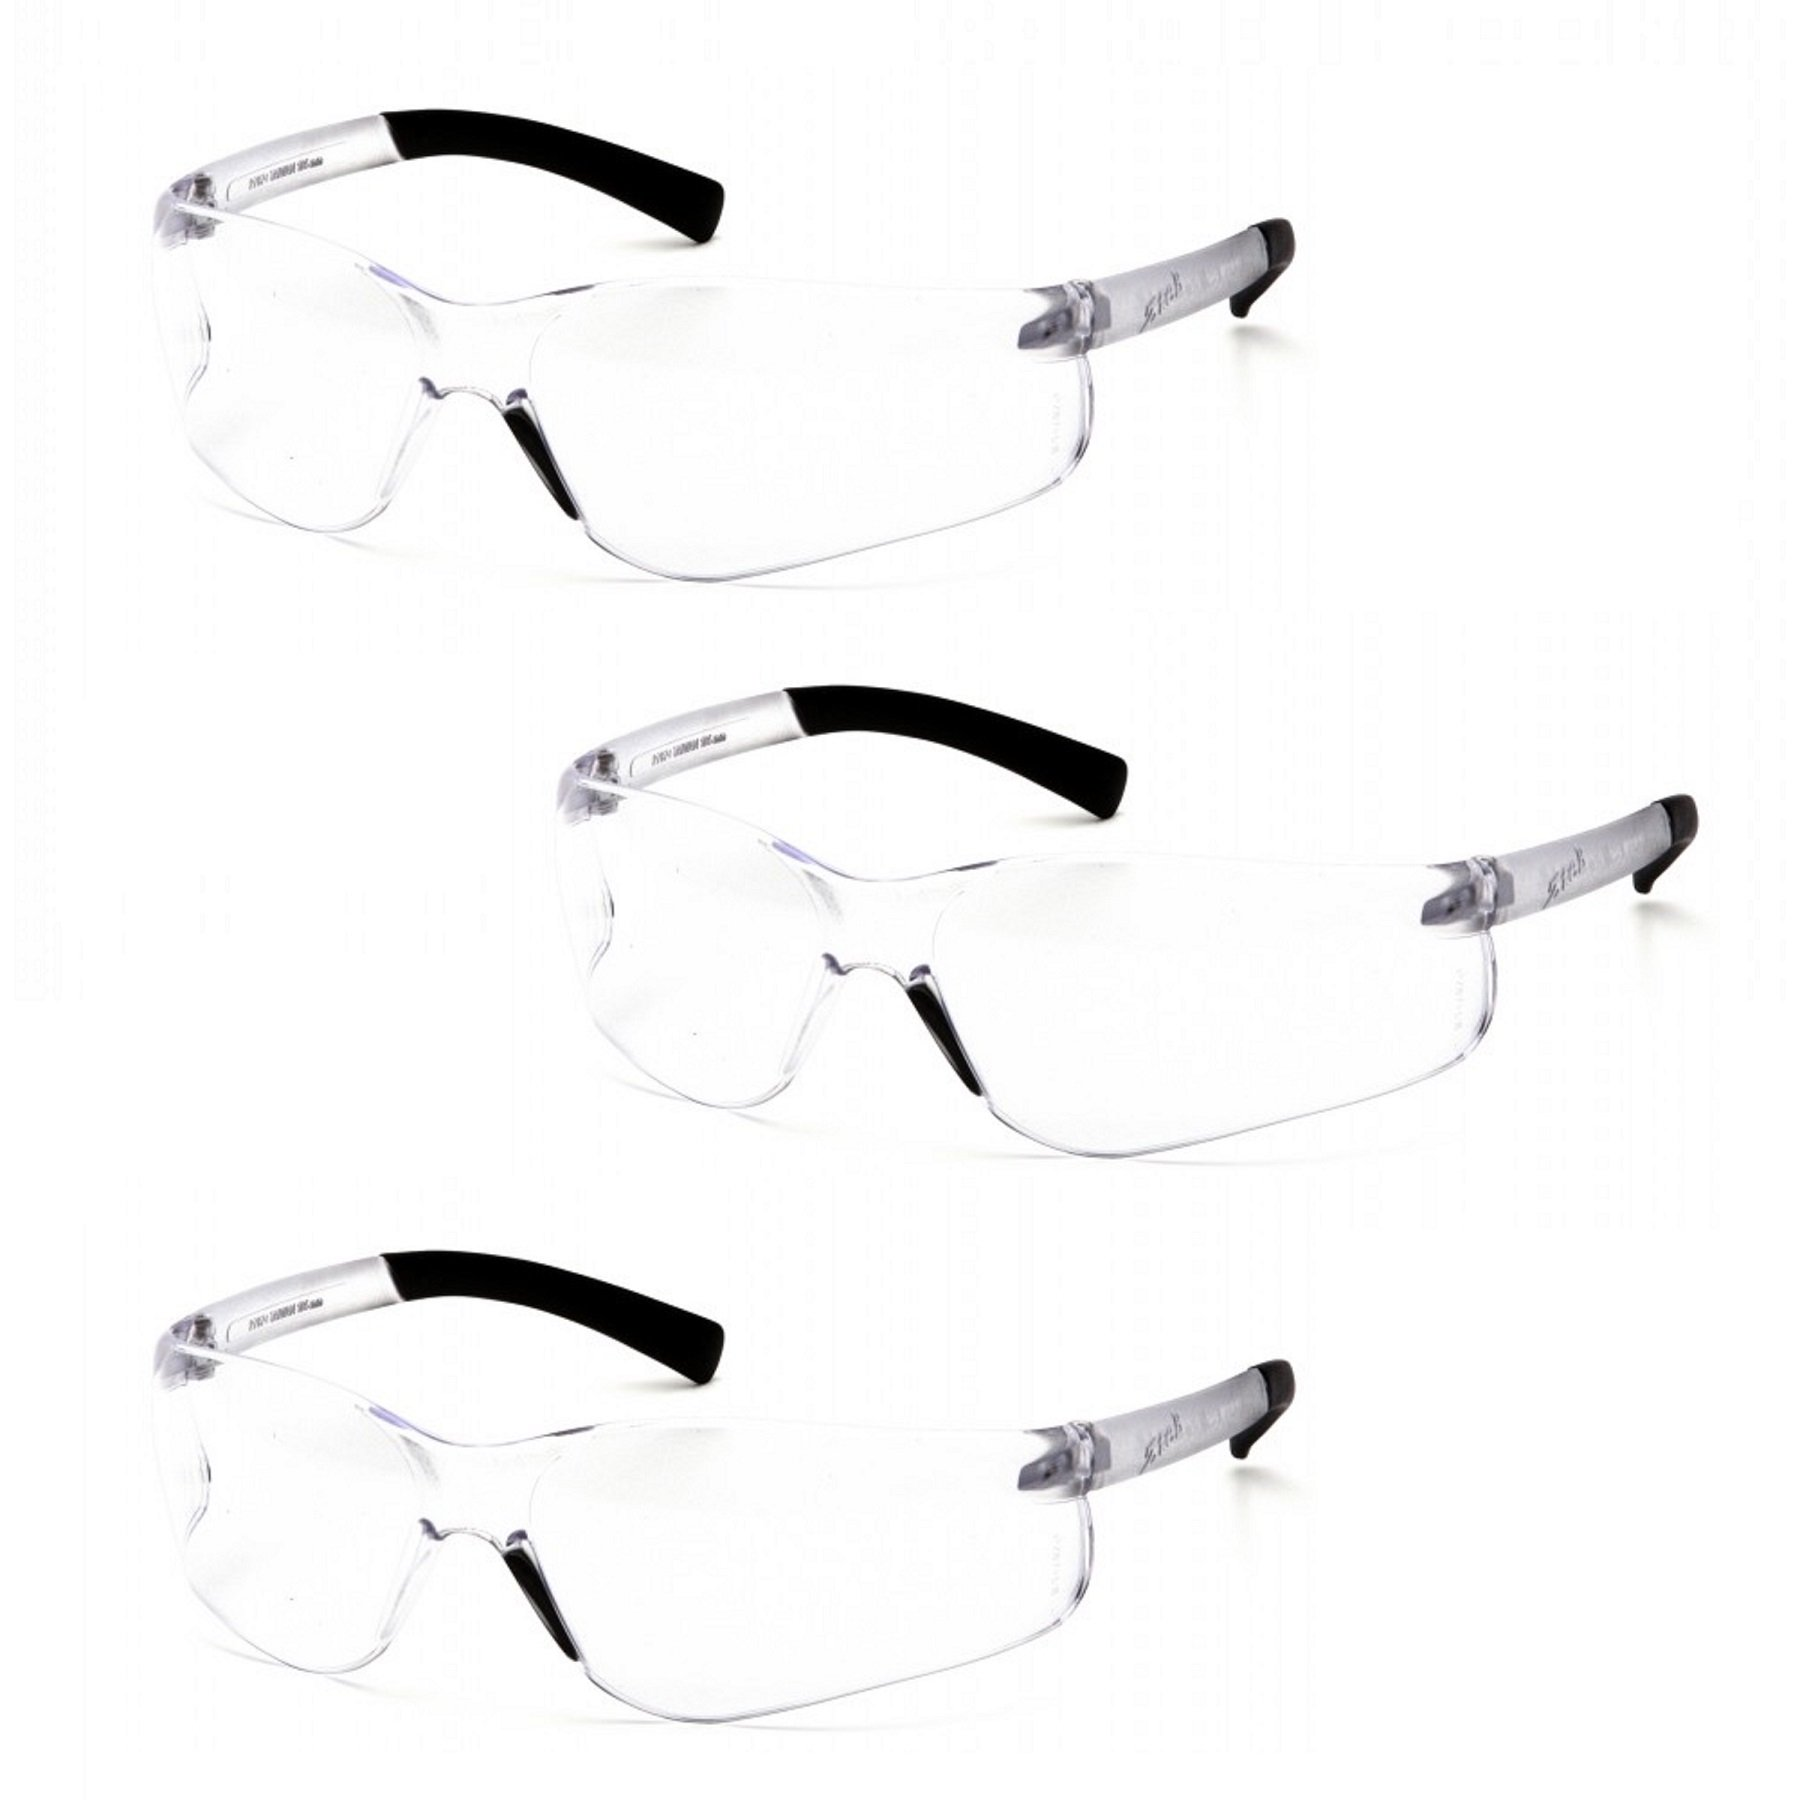 Pyramex Ztek Bifocal Reader Safety Glasses with Clear Lens S2510R15 (3 Pair) (+1.5 Lens) by Pyramex